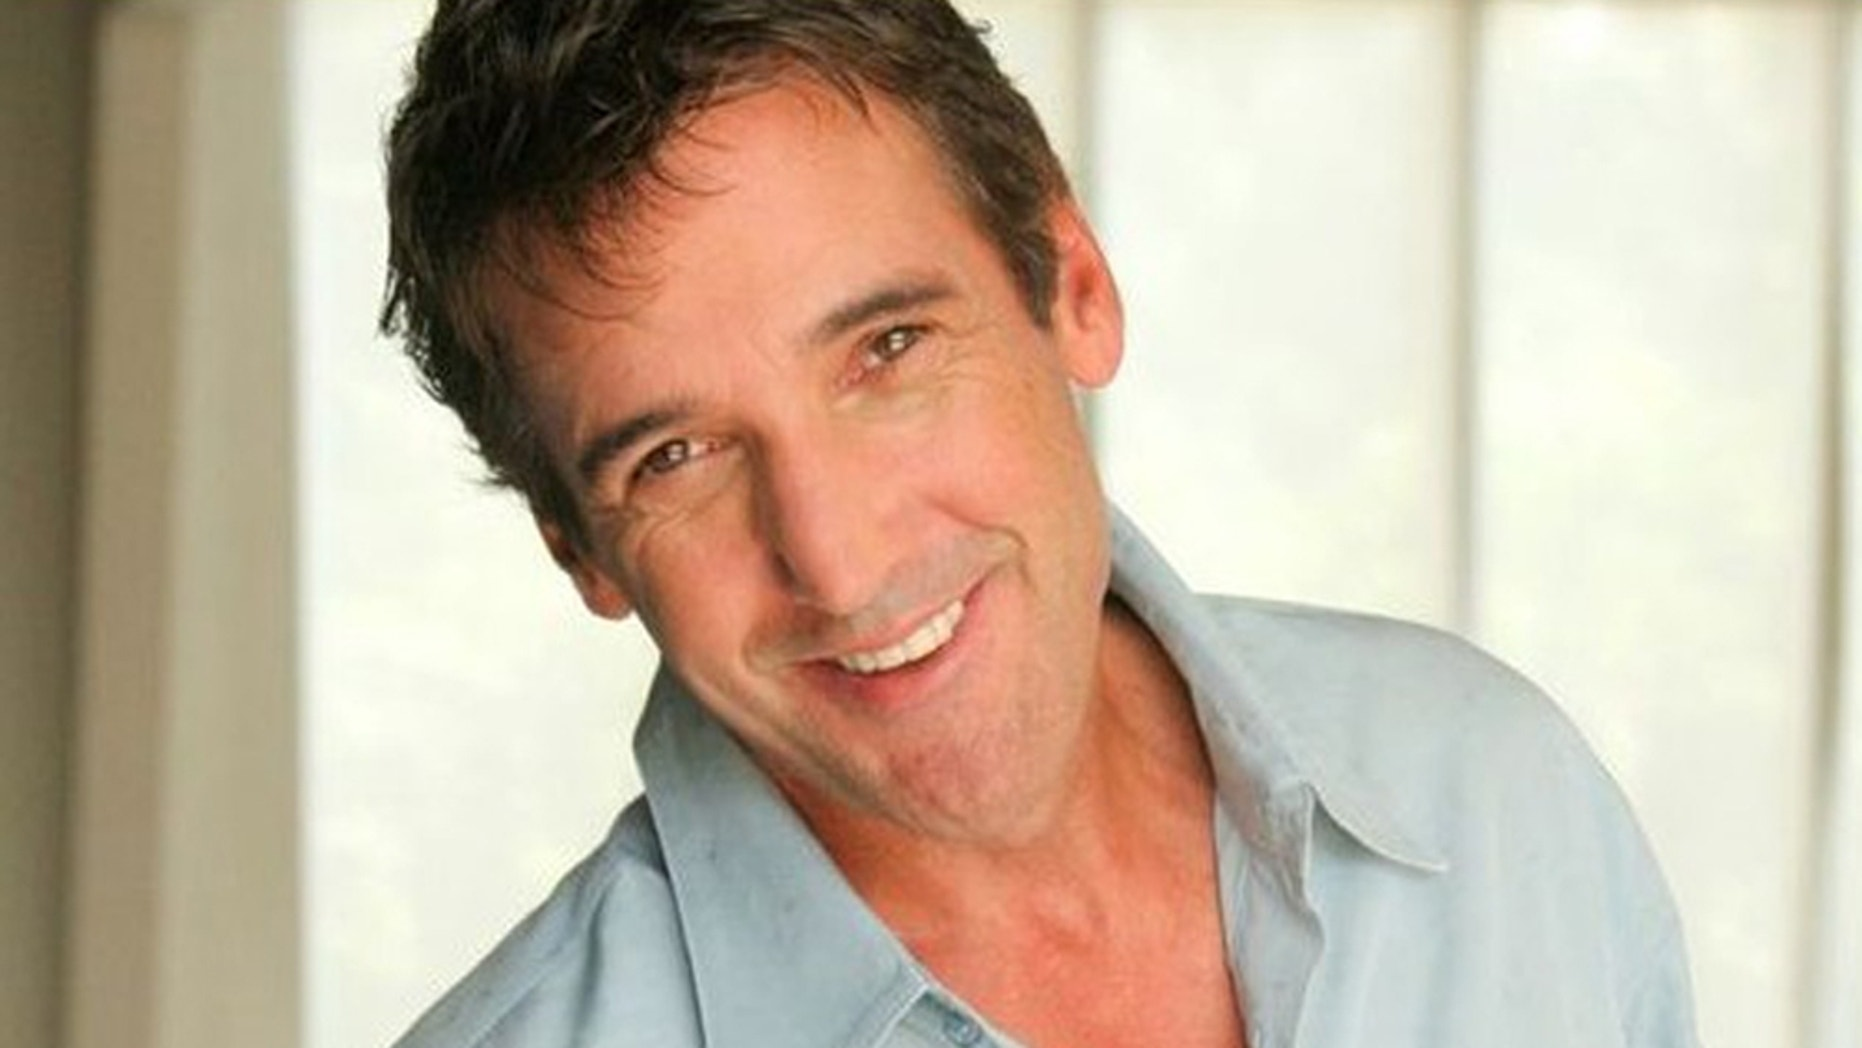 """This undated image provided by YEA Networks via Champion Management on Sunday, July 28, 2013, shows David """"Kidd"""" Kraddick, a Texas-based radio and television personality. Kraddick, host of the """"Kidd Kraddick in the Morning"""" show heard on dozens of U.S. radio stations, died Saturday July 27, 2013, at a charity golf event near New Orleans, a publicist said."""